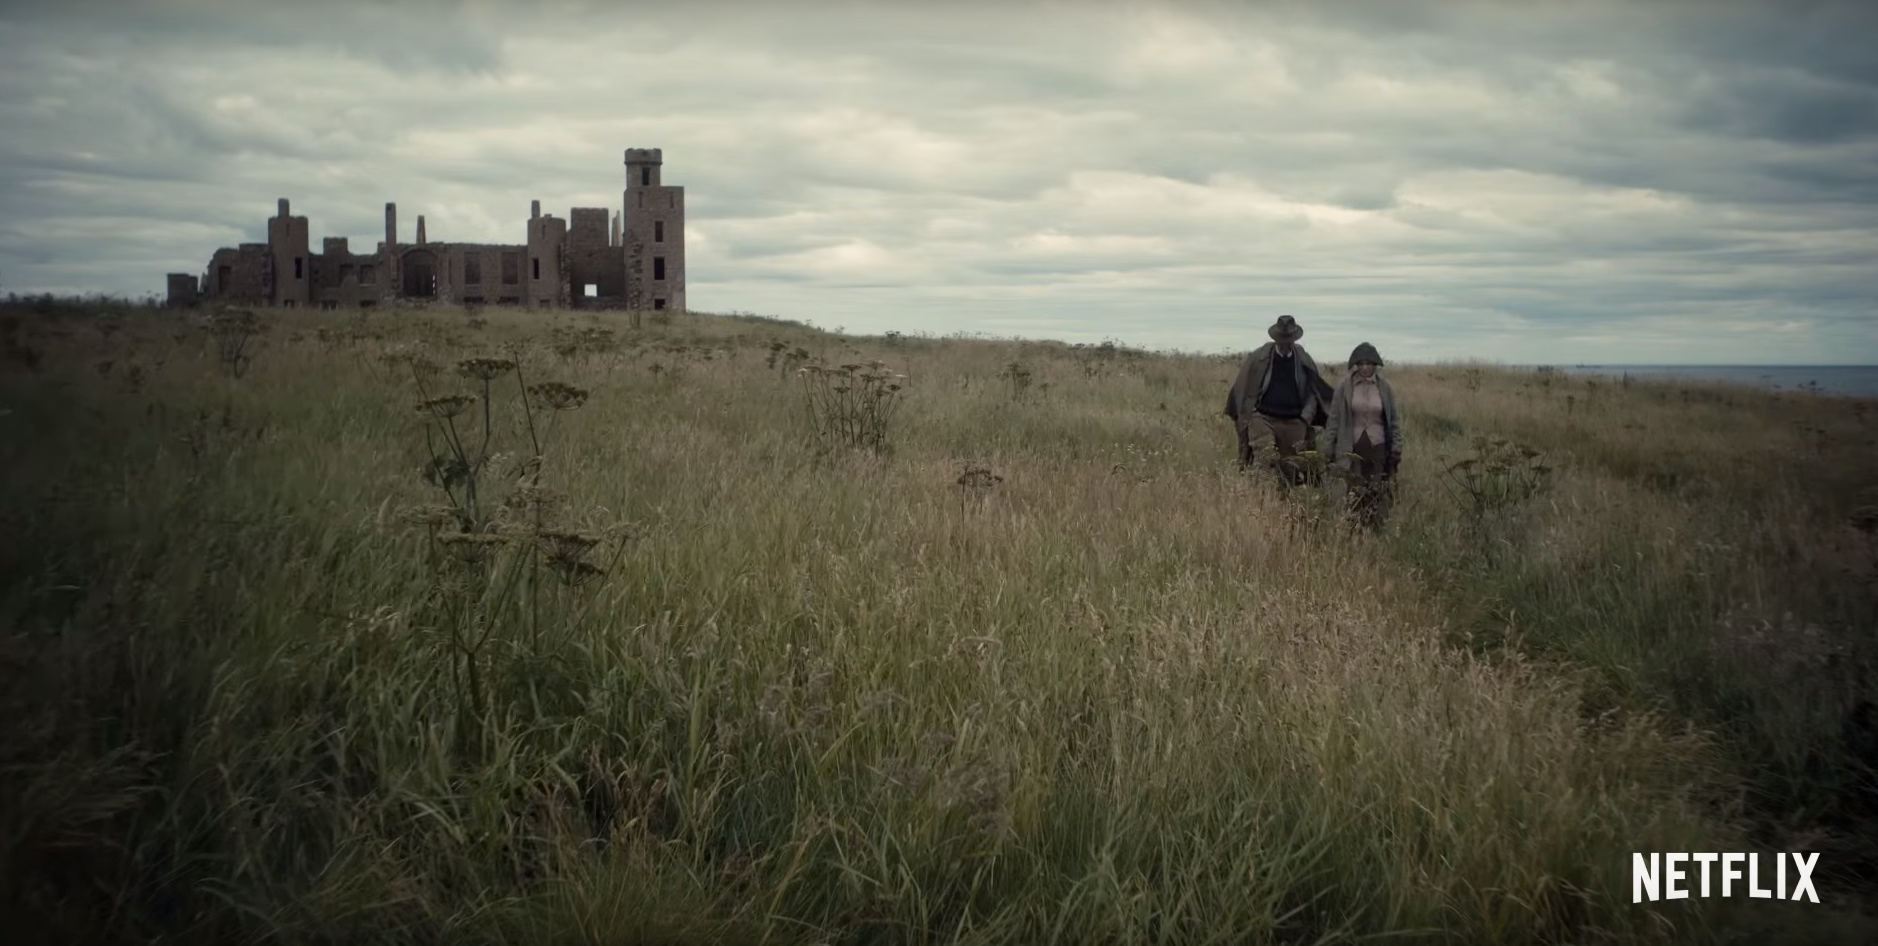 Slains Castle as it appears in The Crown